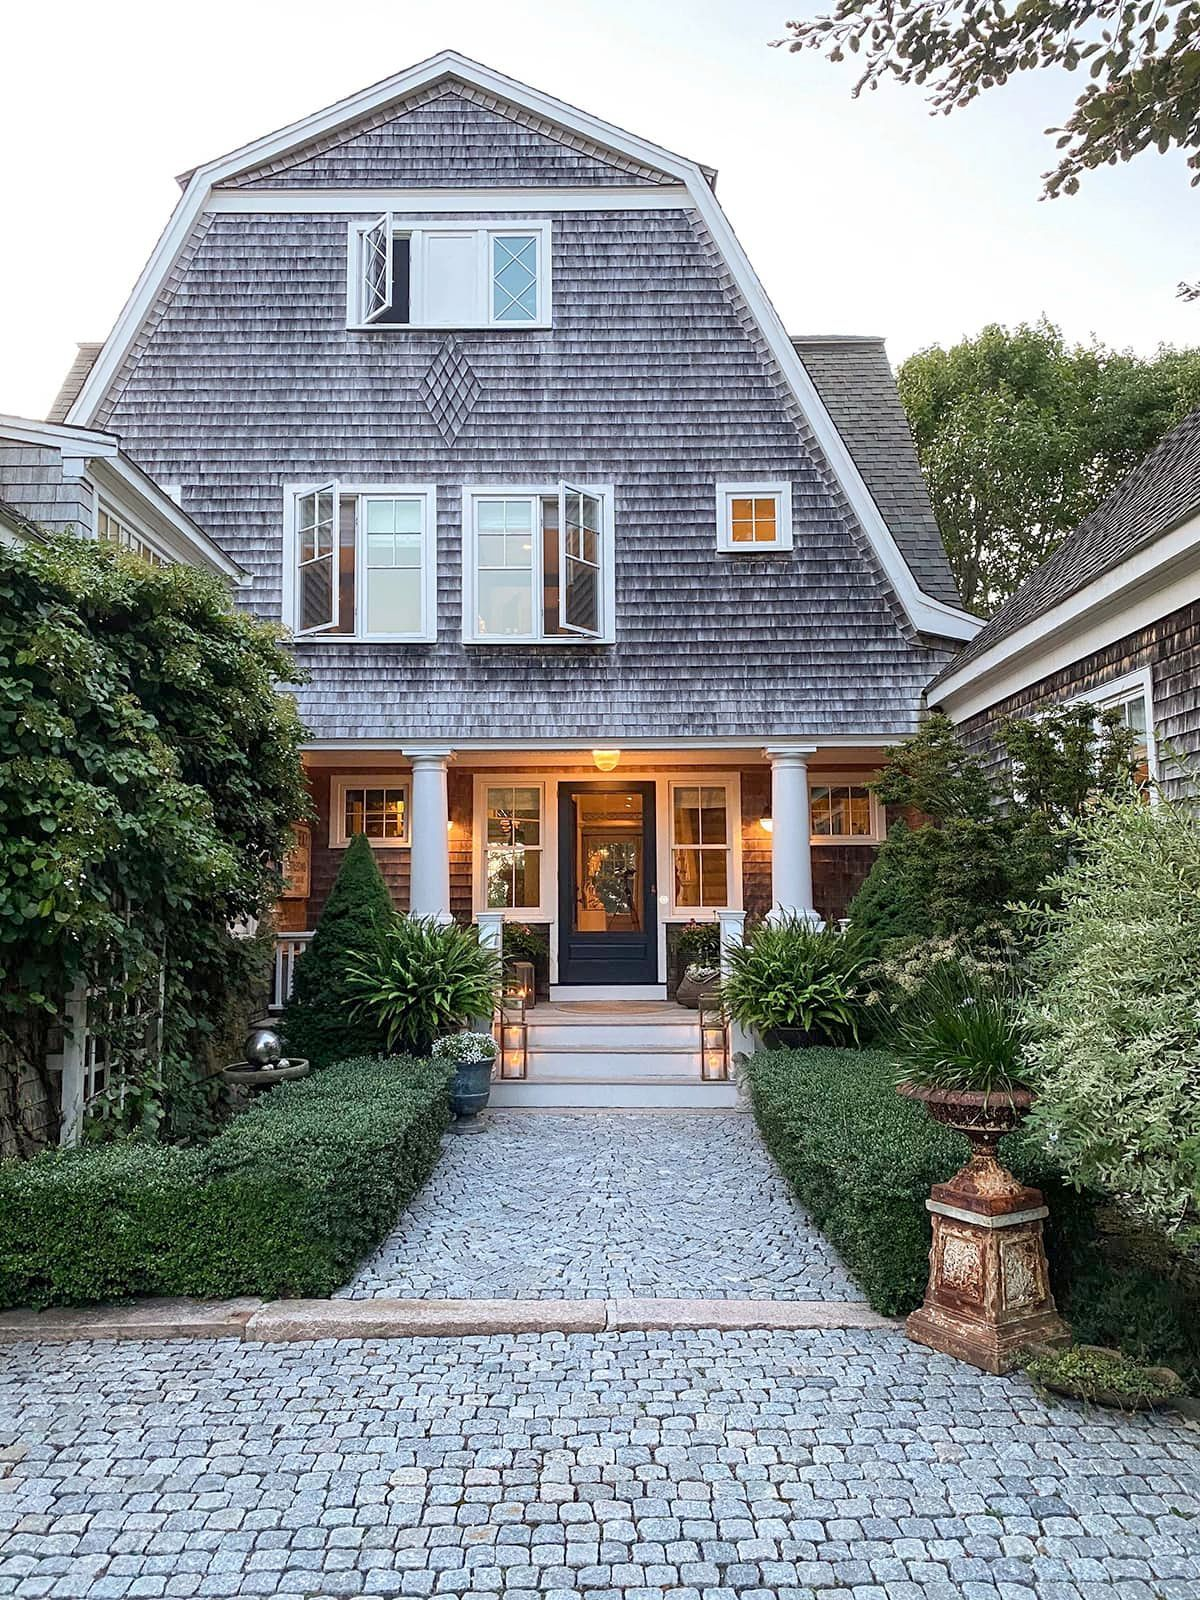 Stunning Classic Cape Cod Home Inspiring Home Tour In 2020 Classic Cape Cape Cod House House Tours